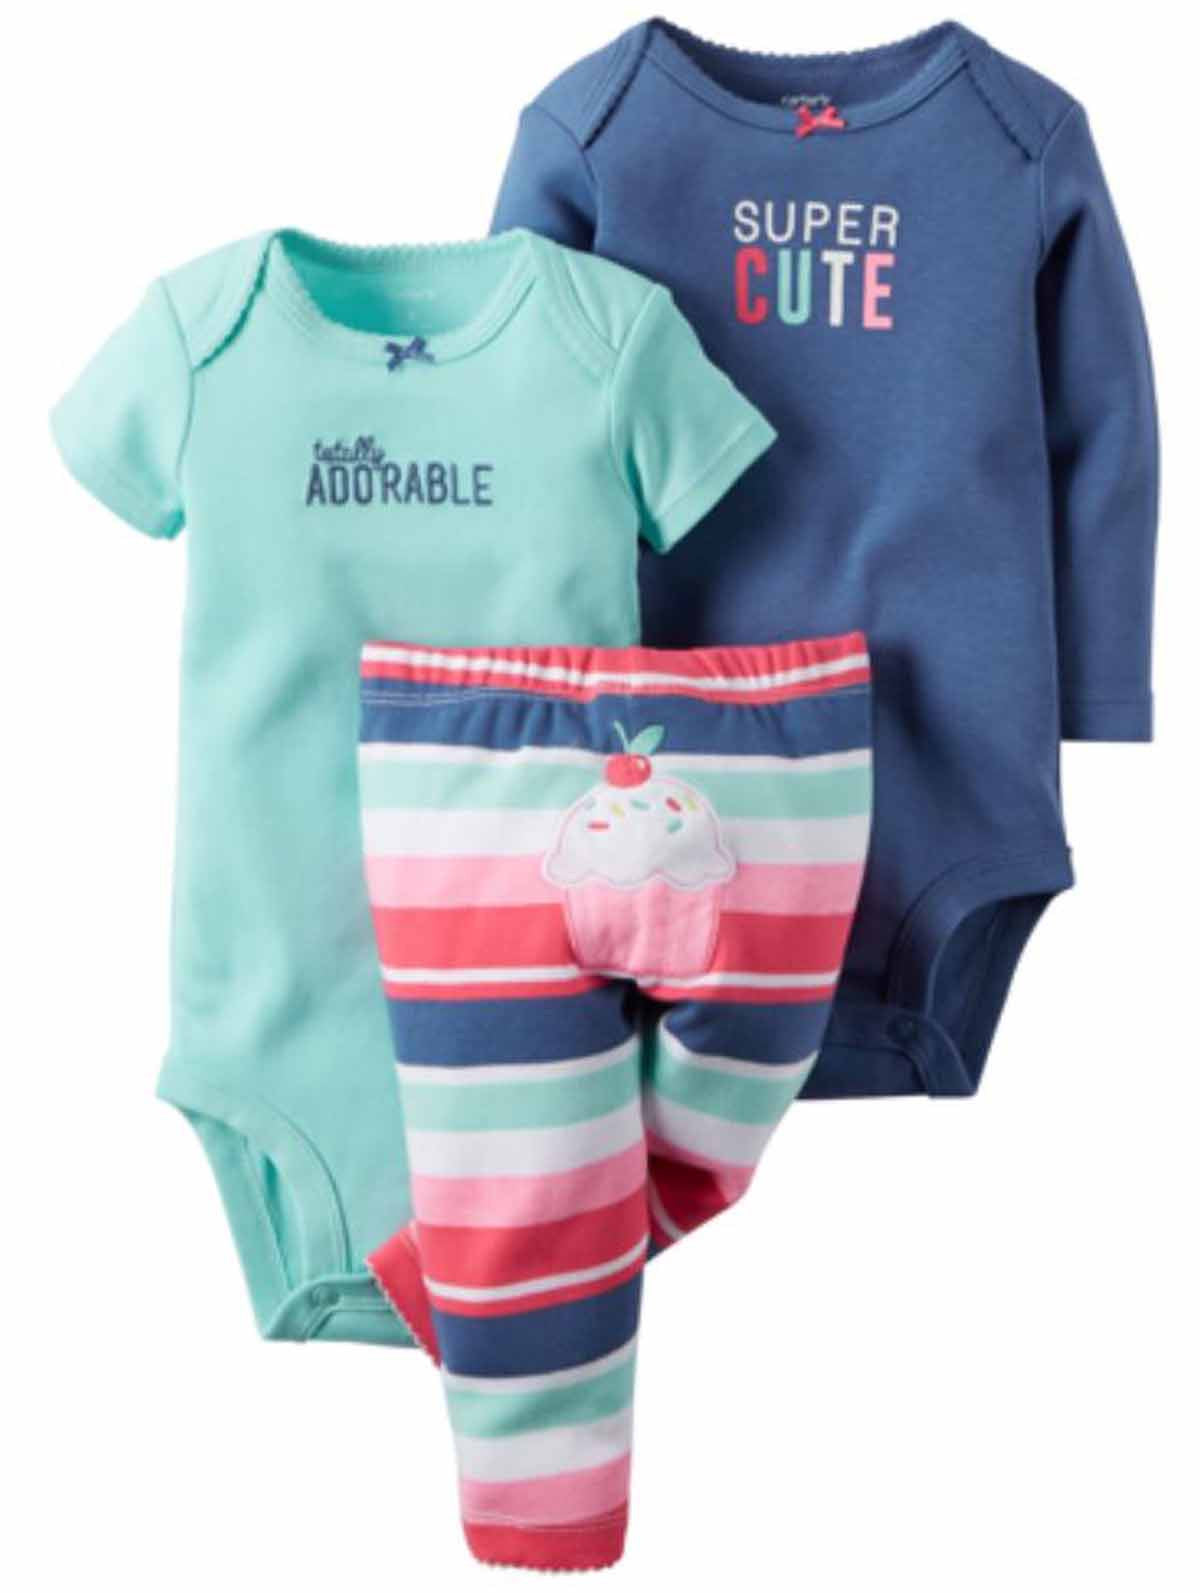 4397f6b5c Carters Baby Girl's 3 Piece Matching Outfit Set-2 Onsies, 1 Pant ...